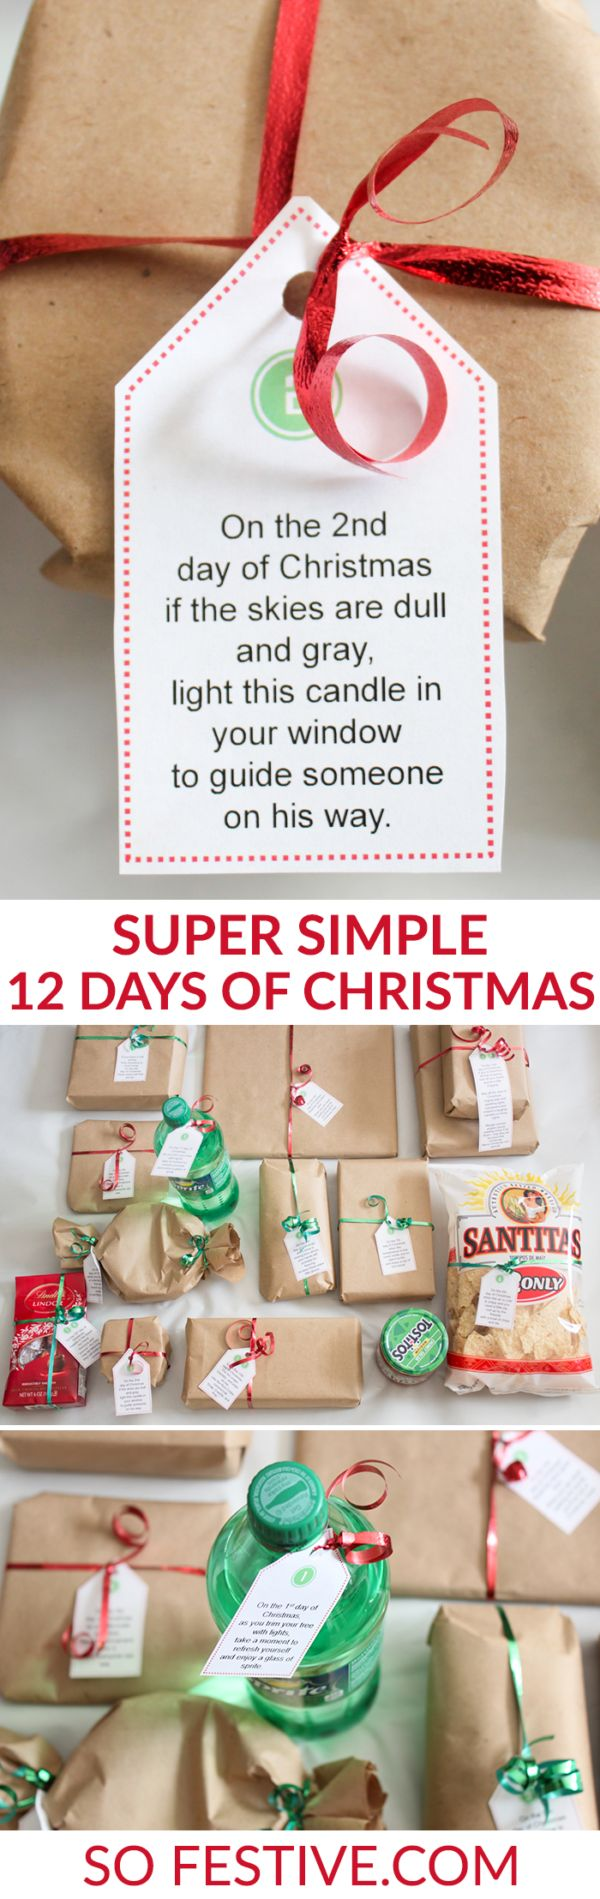 Idea .... 12-days-of-christmas but wrap like the song with a partridge on the paper maids milking etc